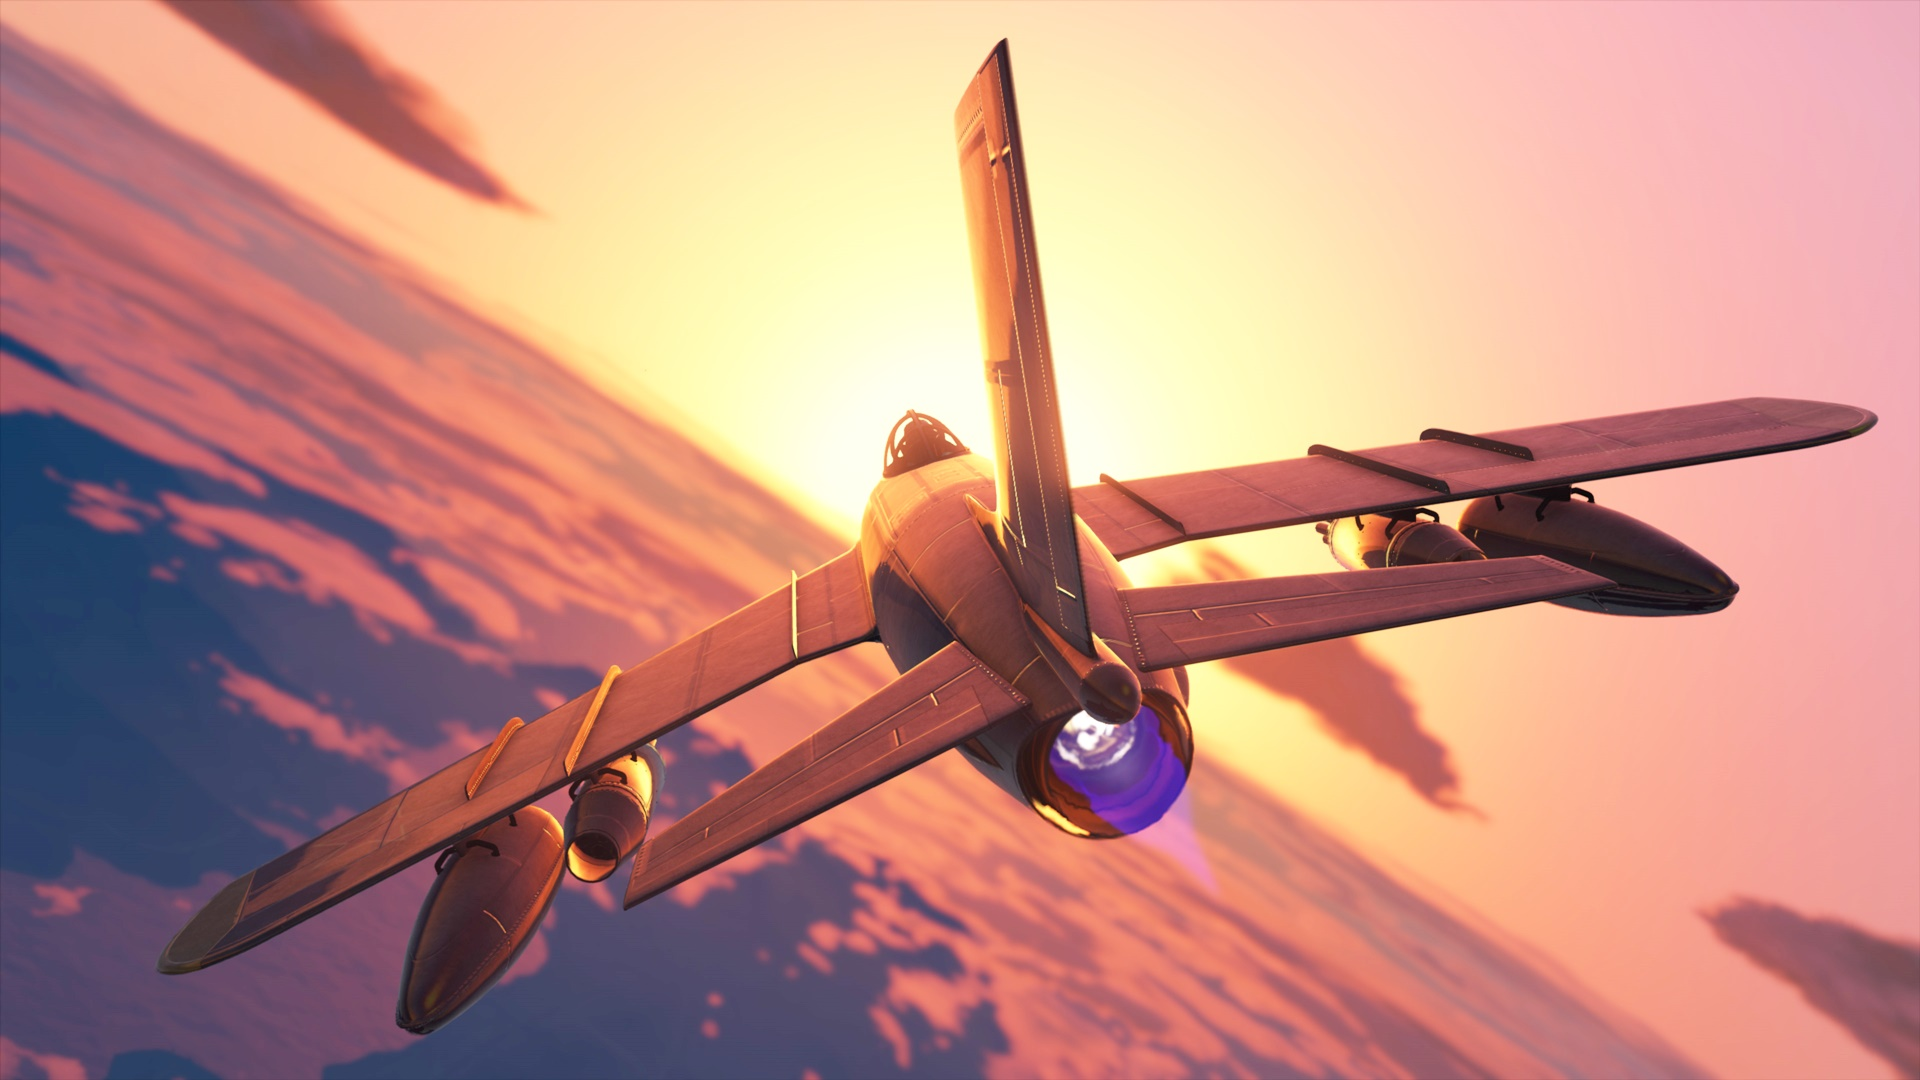 This Grand Theft Auto 5 mod lets you control a plane using your body